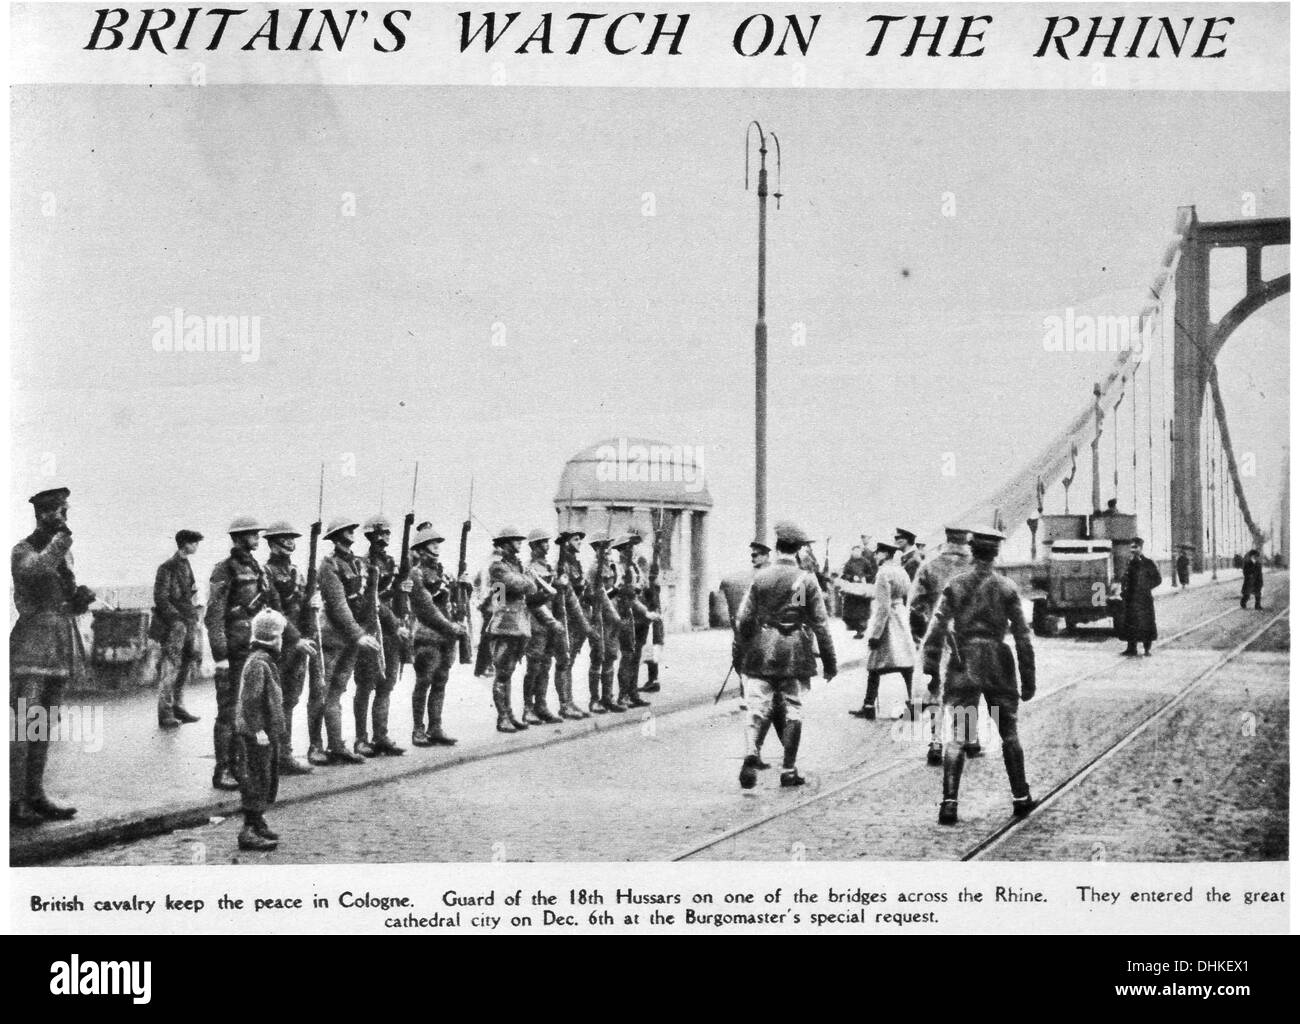 Britain's watch on the Rhine British Cavalry keep the peace in Cologne. Guard of the 18th Hussars on bridge across Rhine - Stock Image